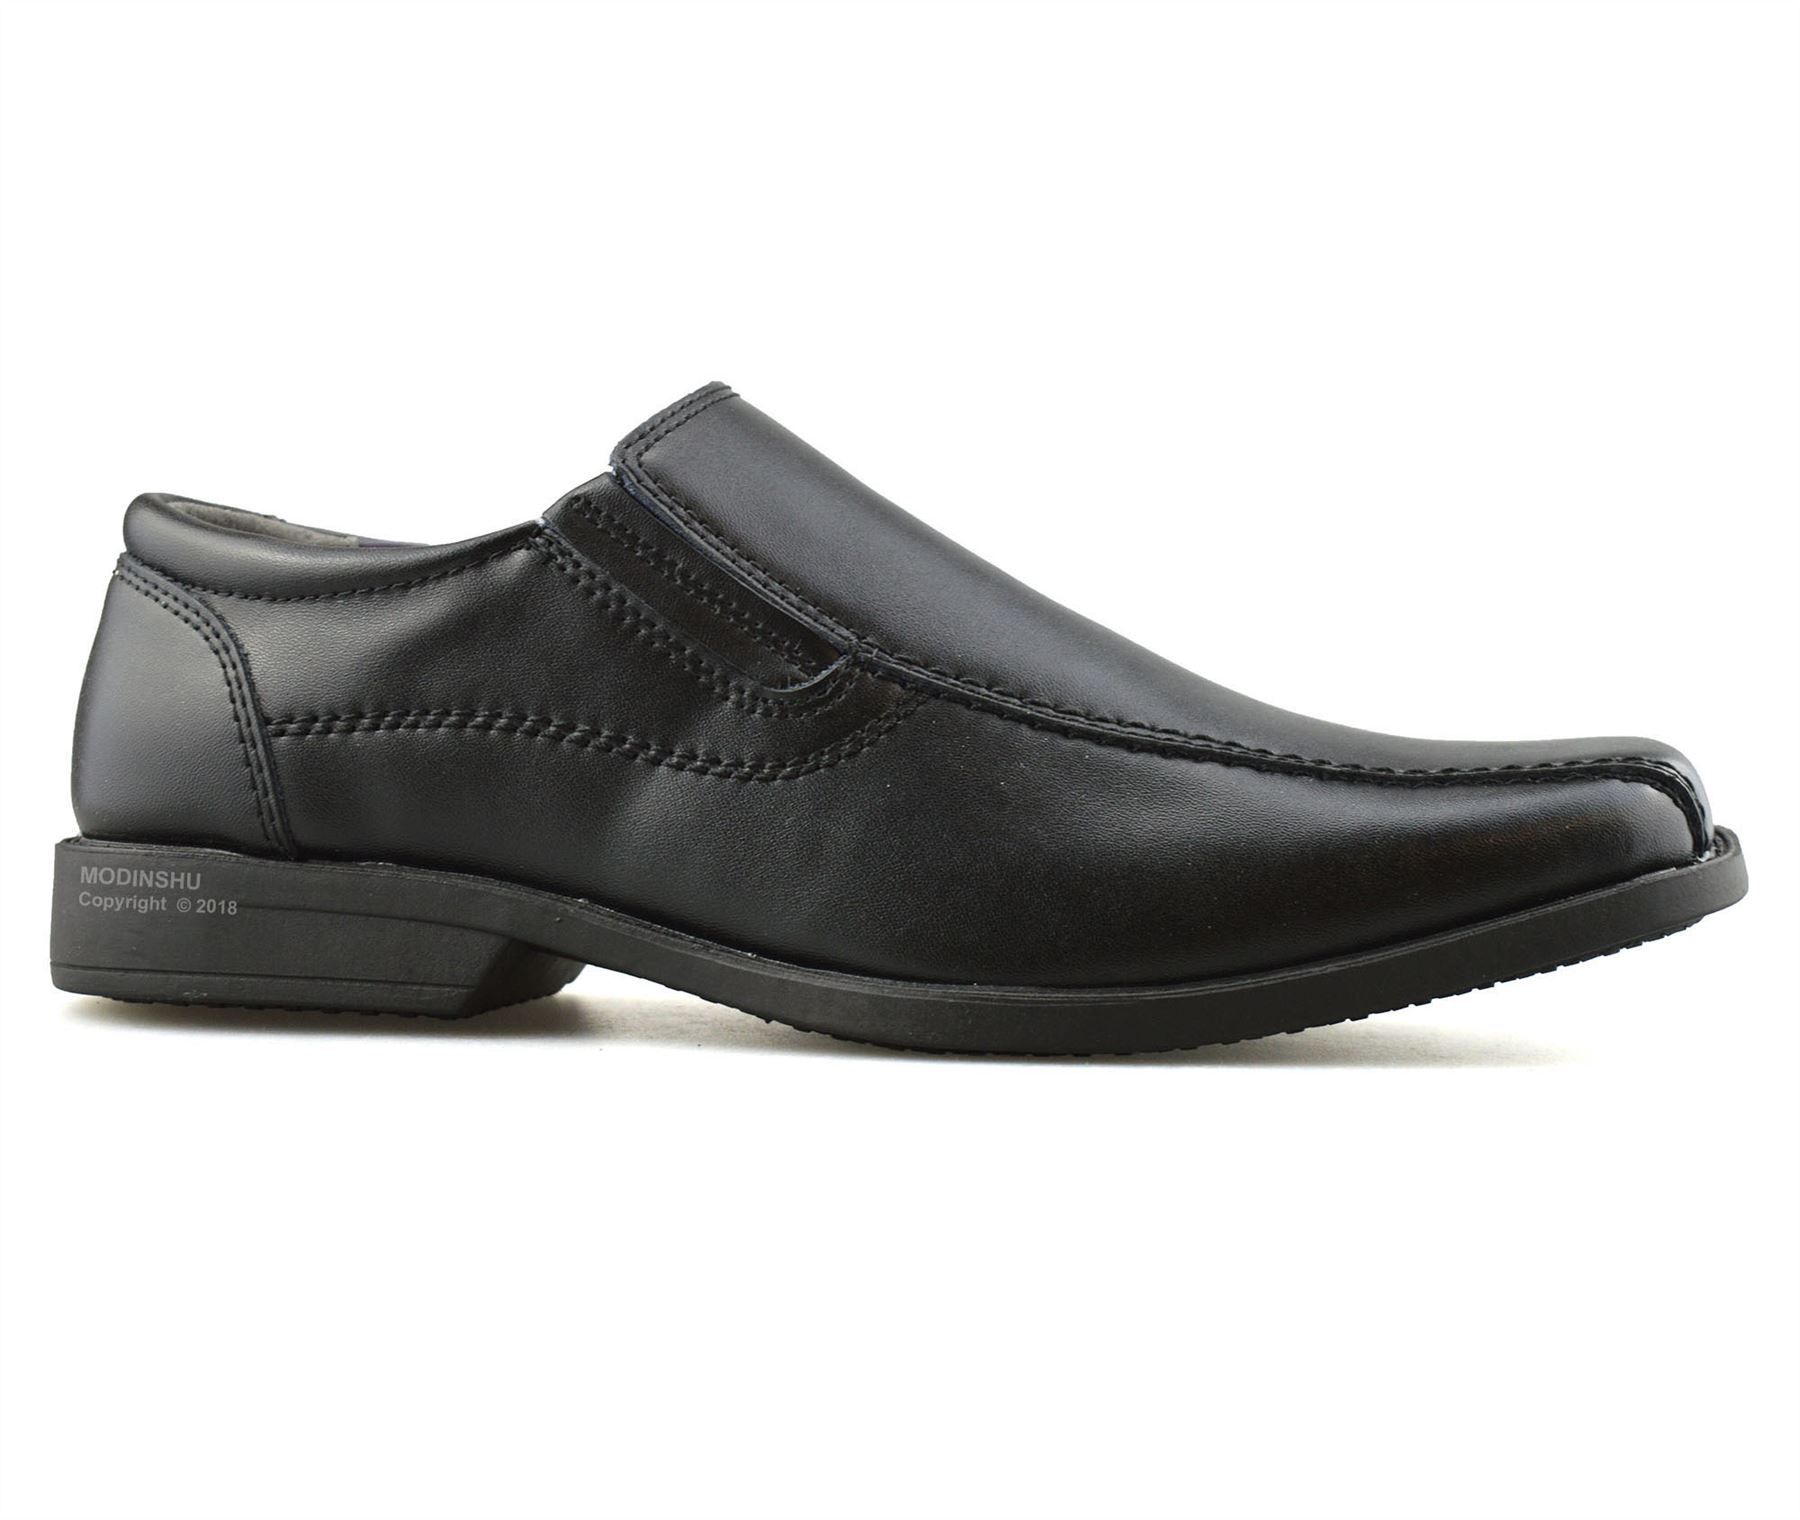 Mens-Leather-Slip-On-Casual-Smart-Office-Walking-Moccasin-Work-Loafers-Shoe-Size thumbnail 9